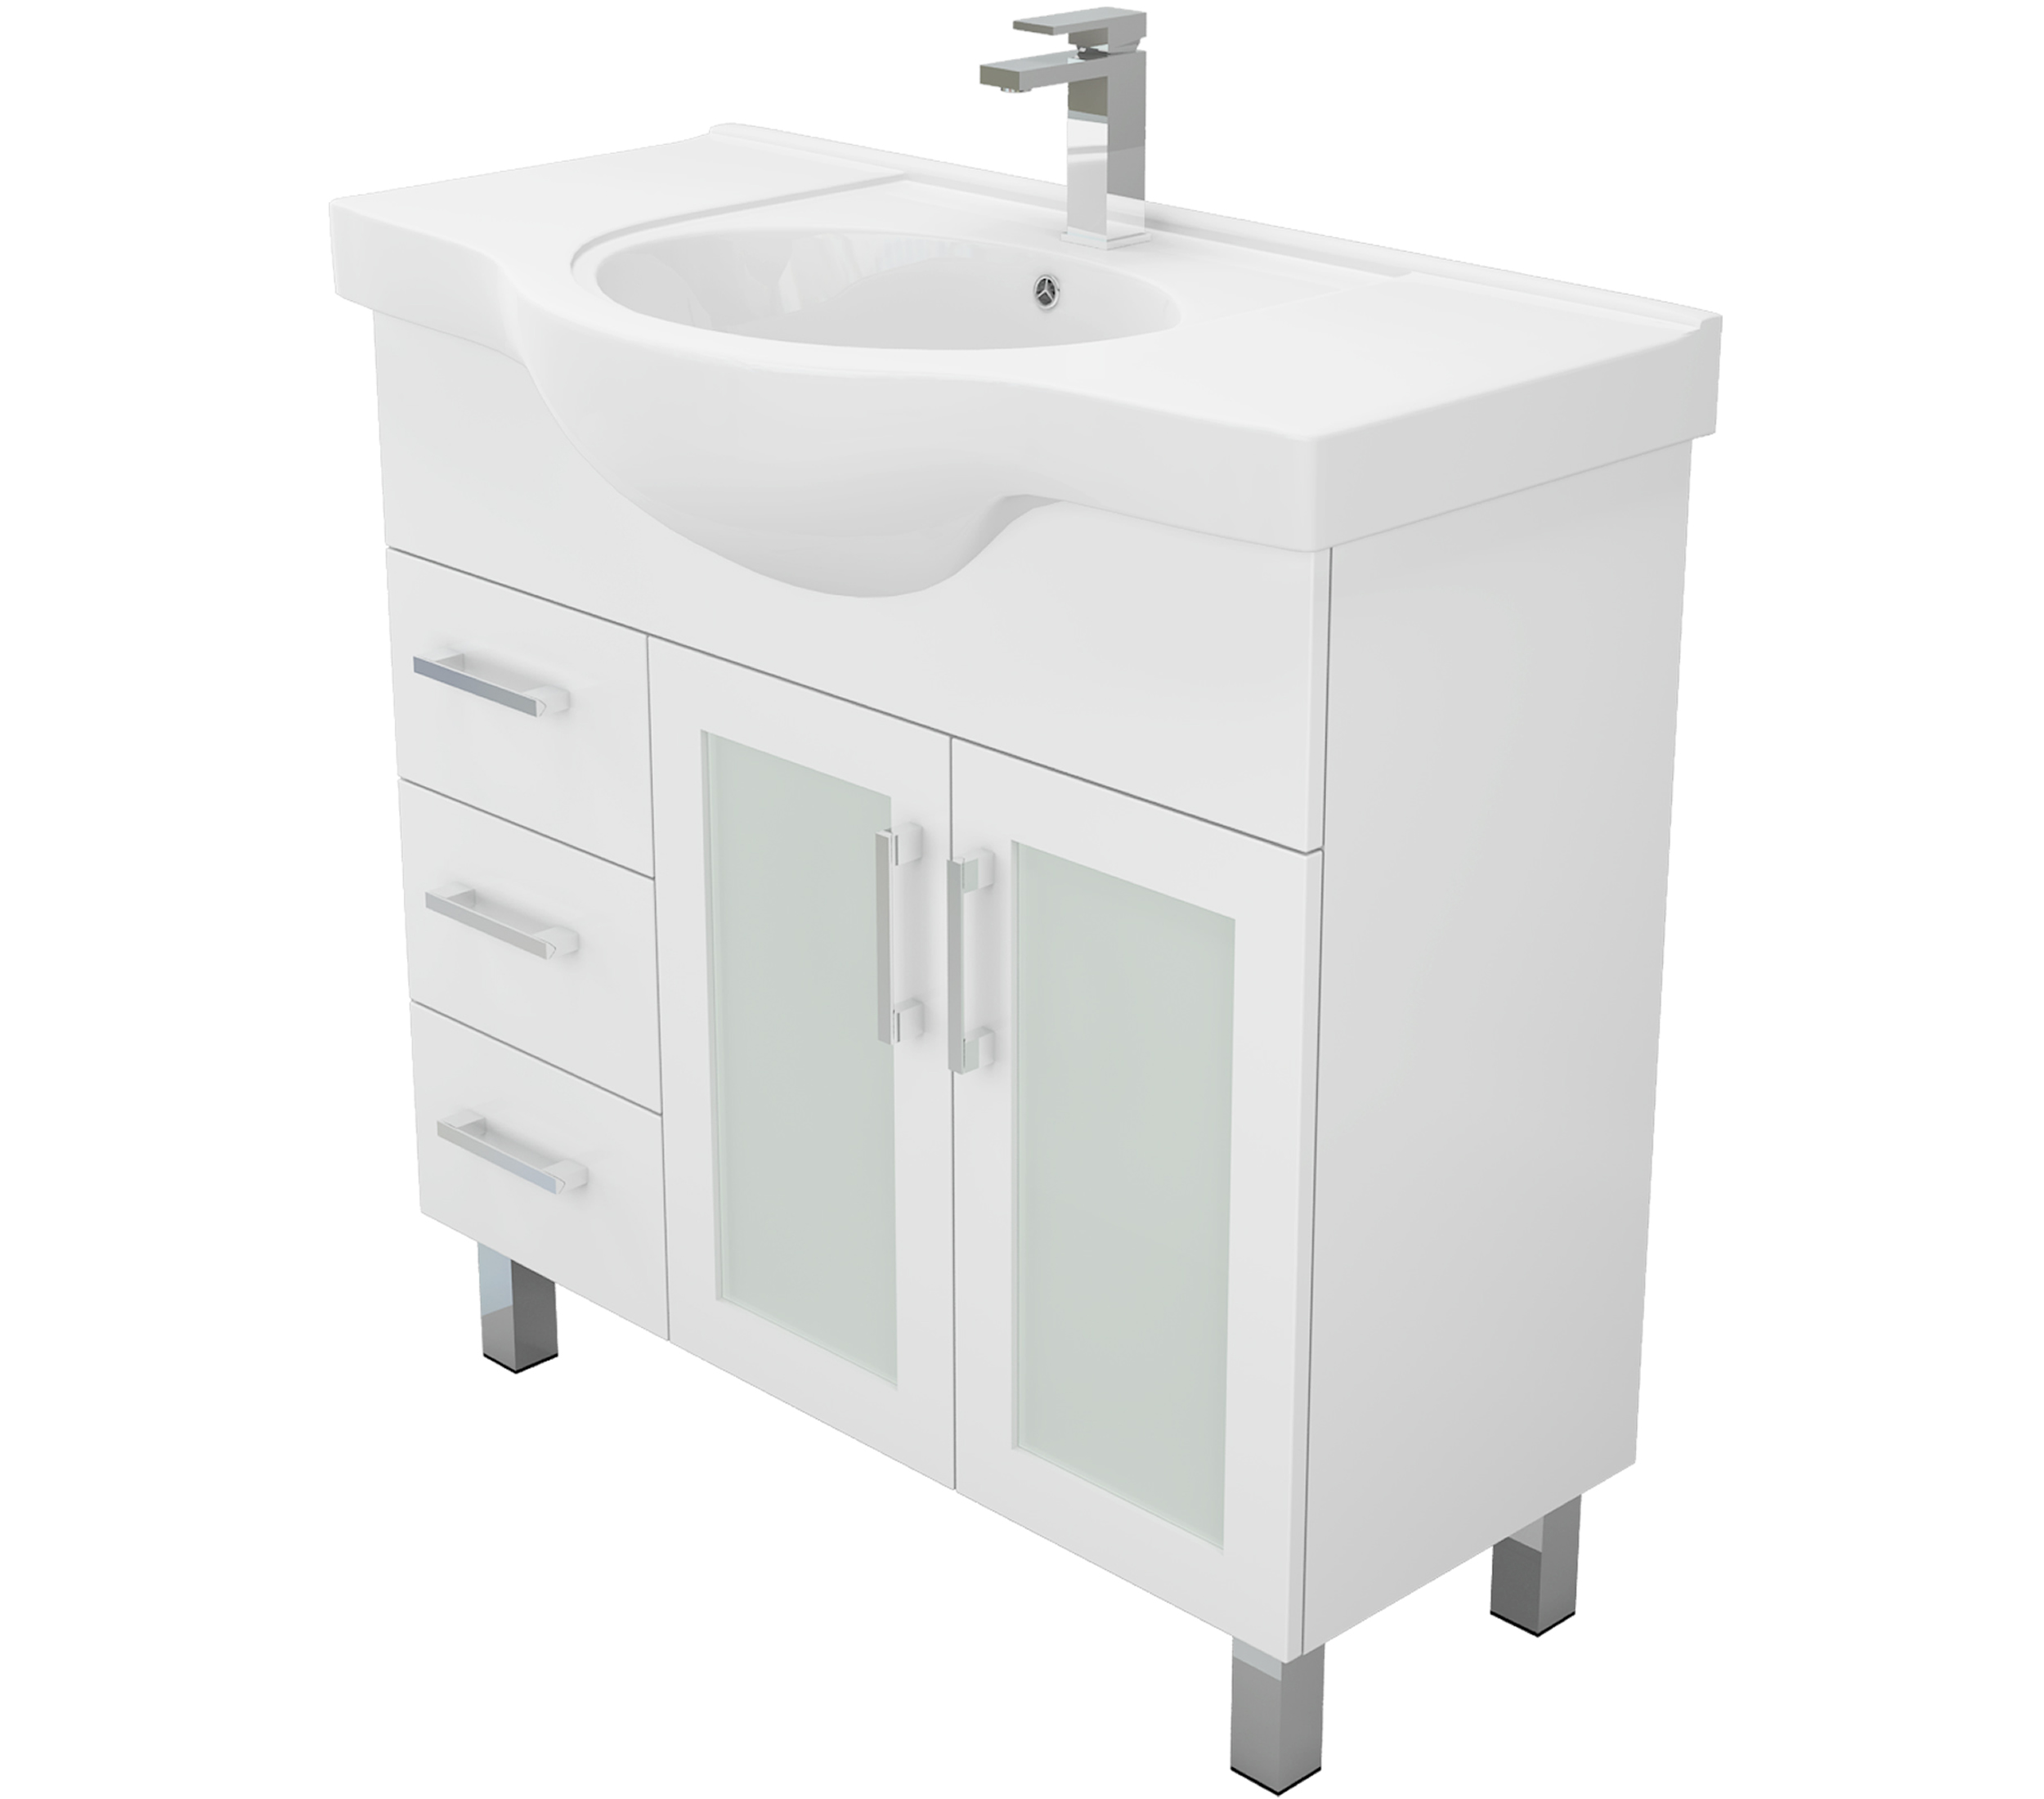 Charli Semi Recessed Vanity Bathroom Vanities Perth